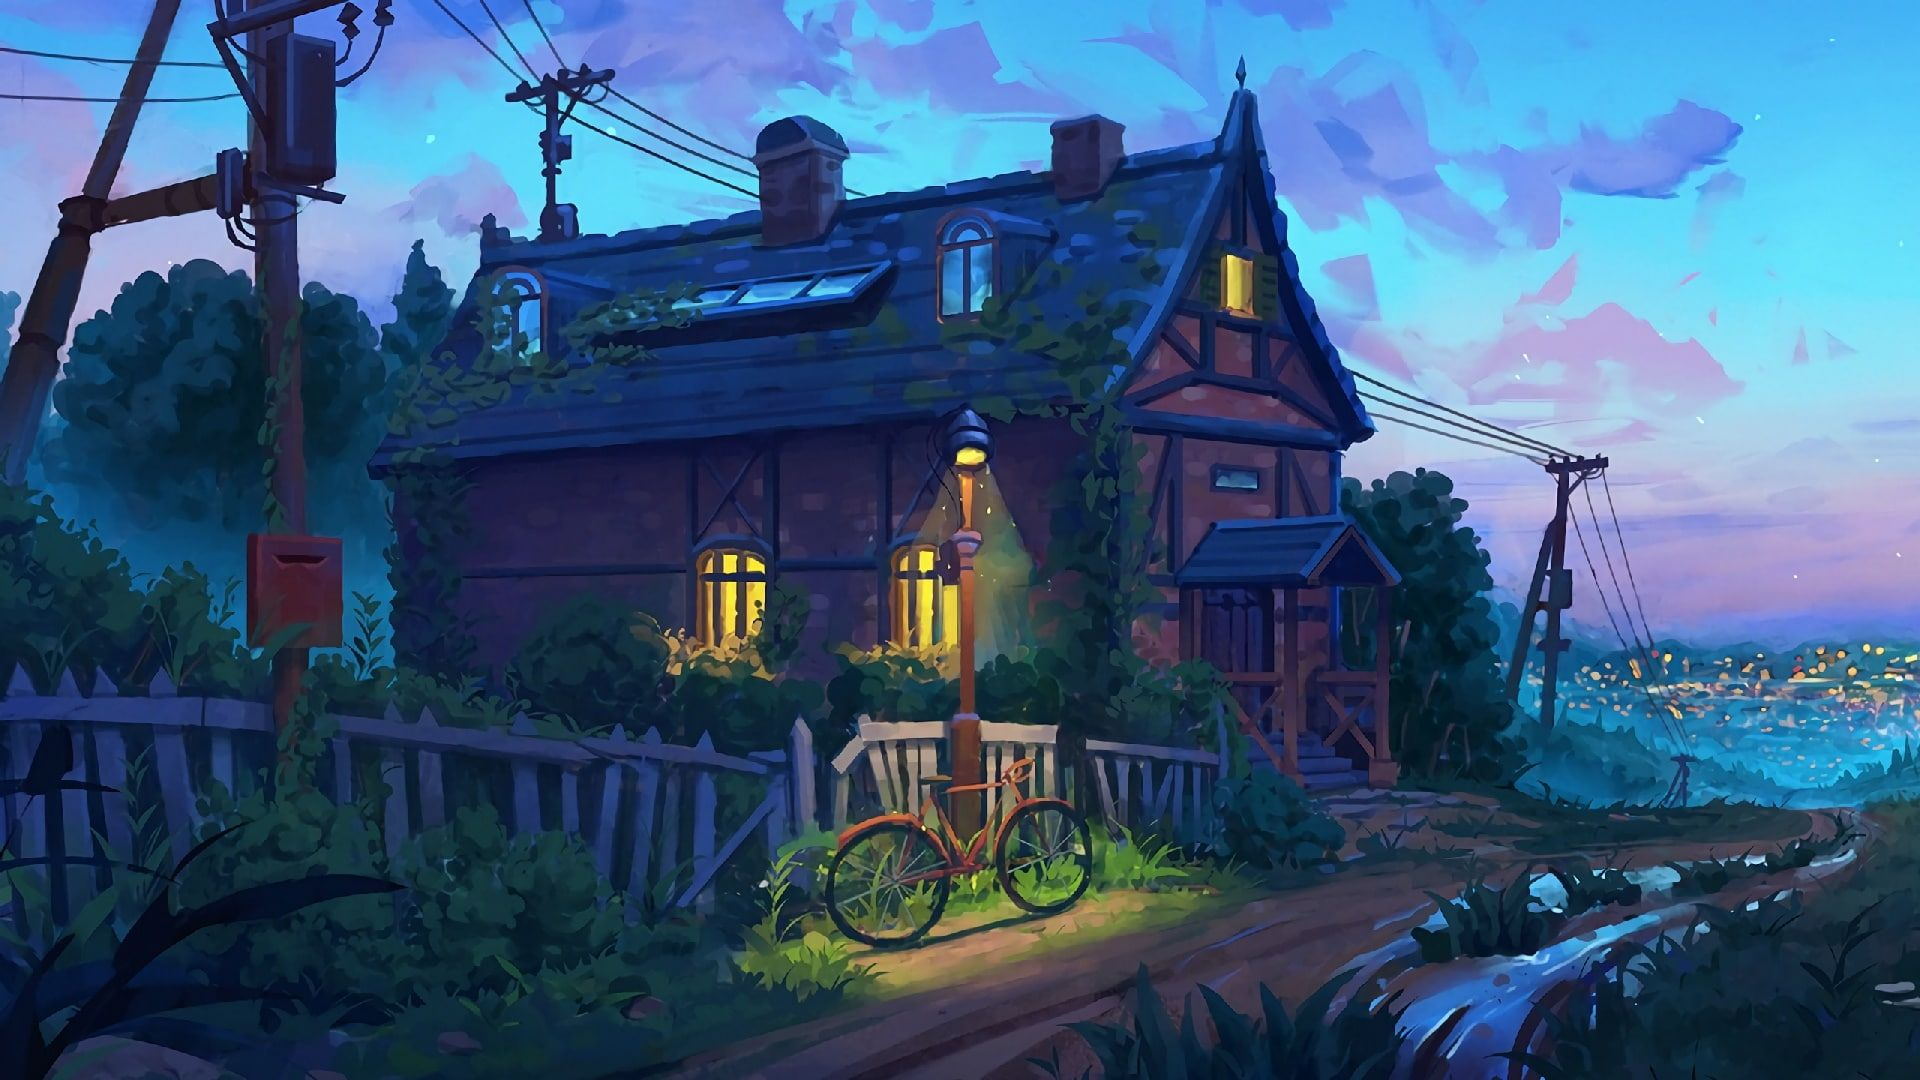 House Painting Bycicle Bike Concept Art Cottage Digital Painting Evening Landscape Art 1080p Wallpaper Hdwa In 2020 Digital Painting Art Wallpaper Wallpaper